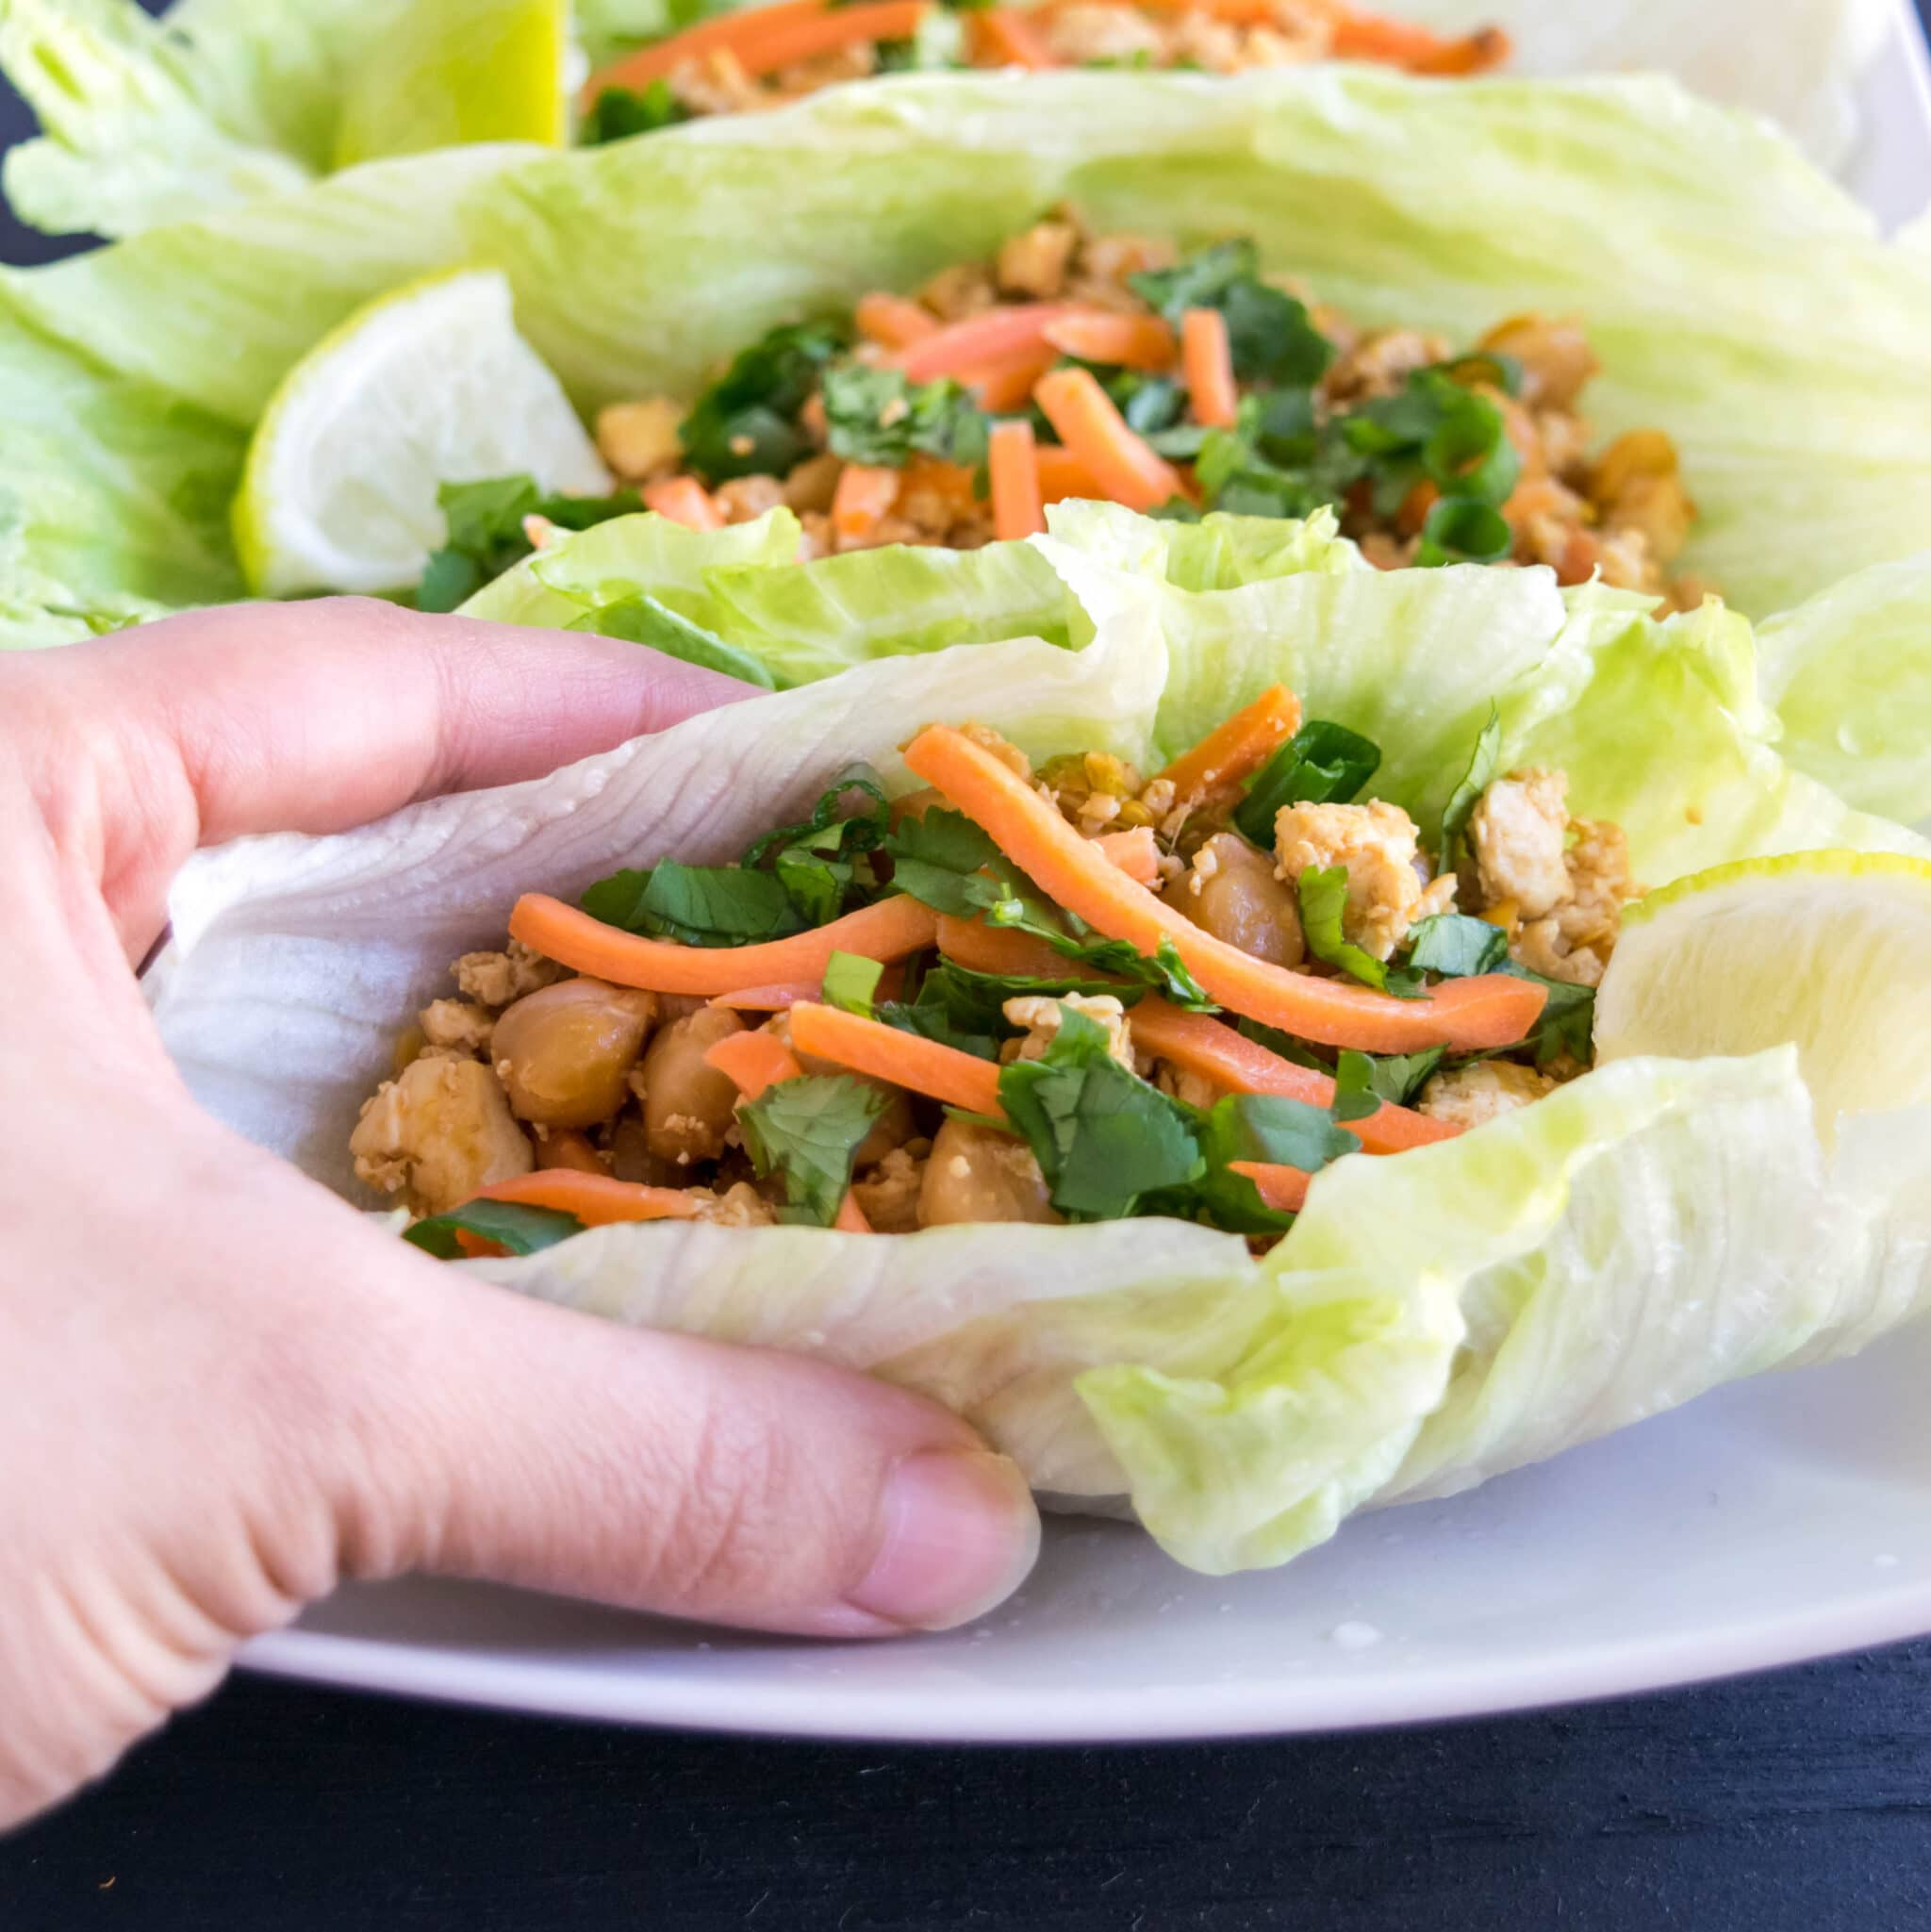 A hand picking up a lettuce wrap is shown in this image.